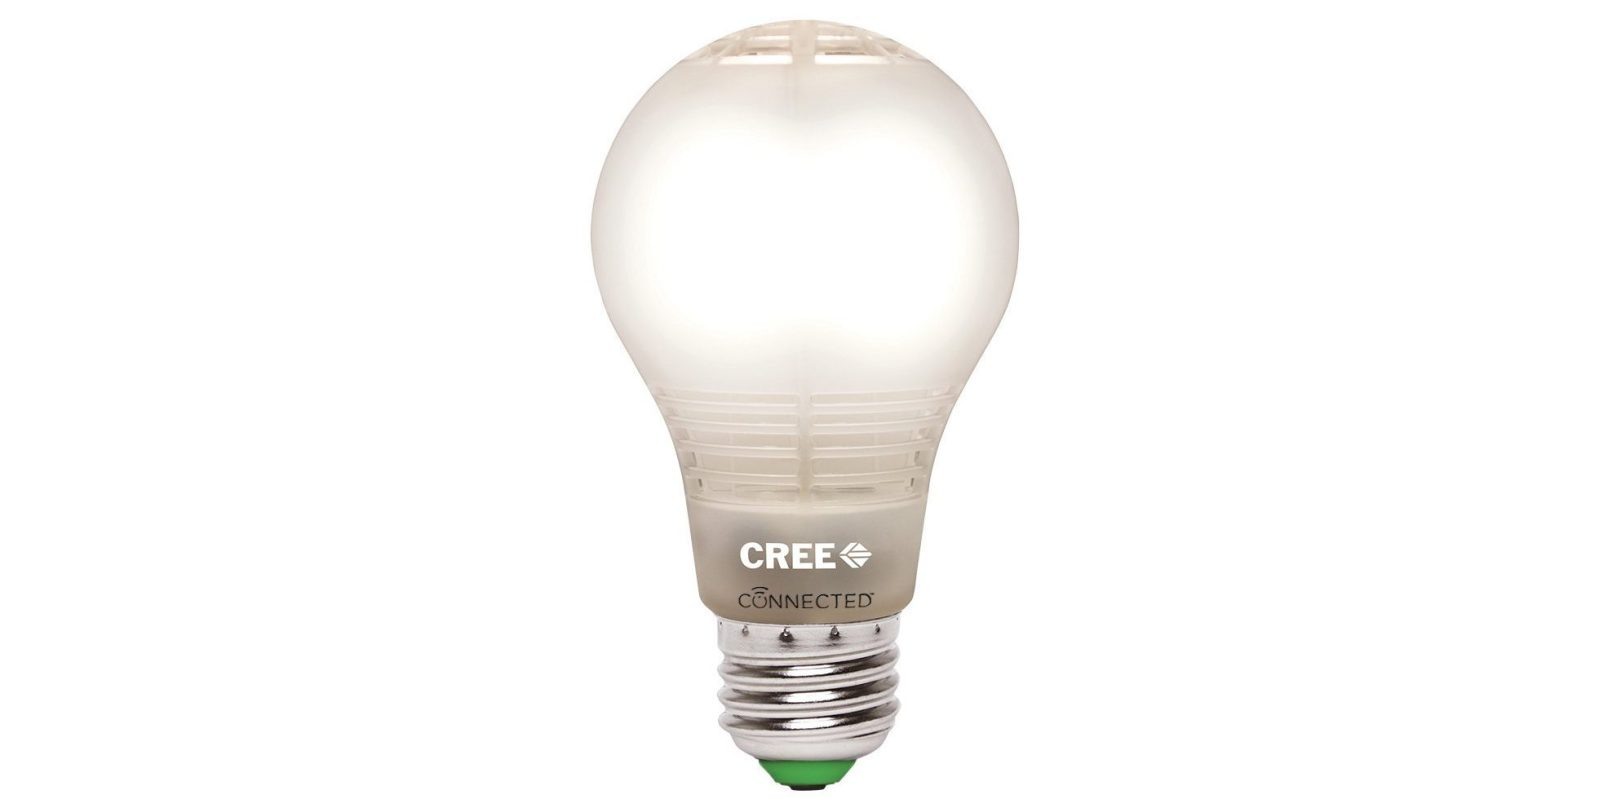 Cree's Connected Smart Bulbs work with Alexa at new lows from $3 each